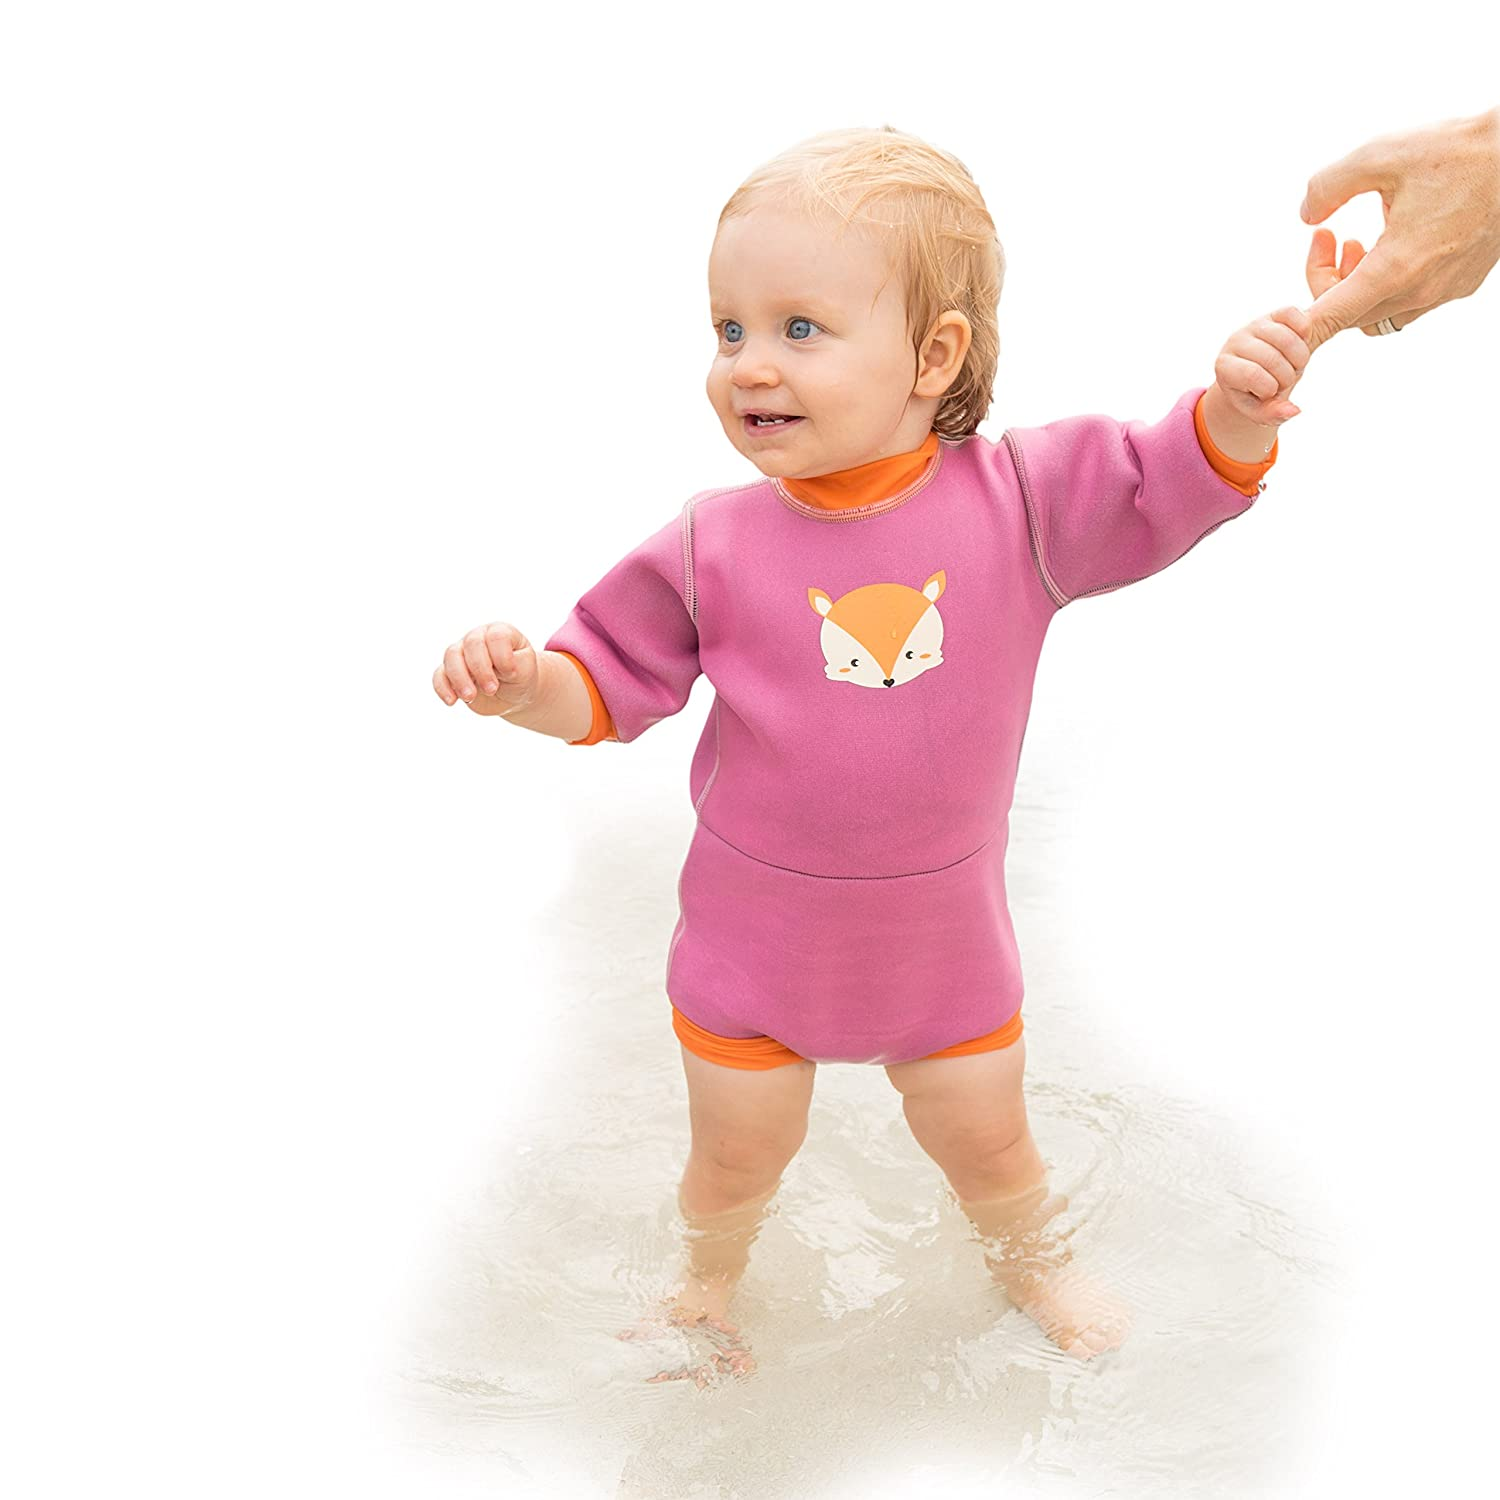 Active Nature Baby Warm Wetsuit, Neoprene, UV Protection - Swimwear for Toddlers